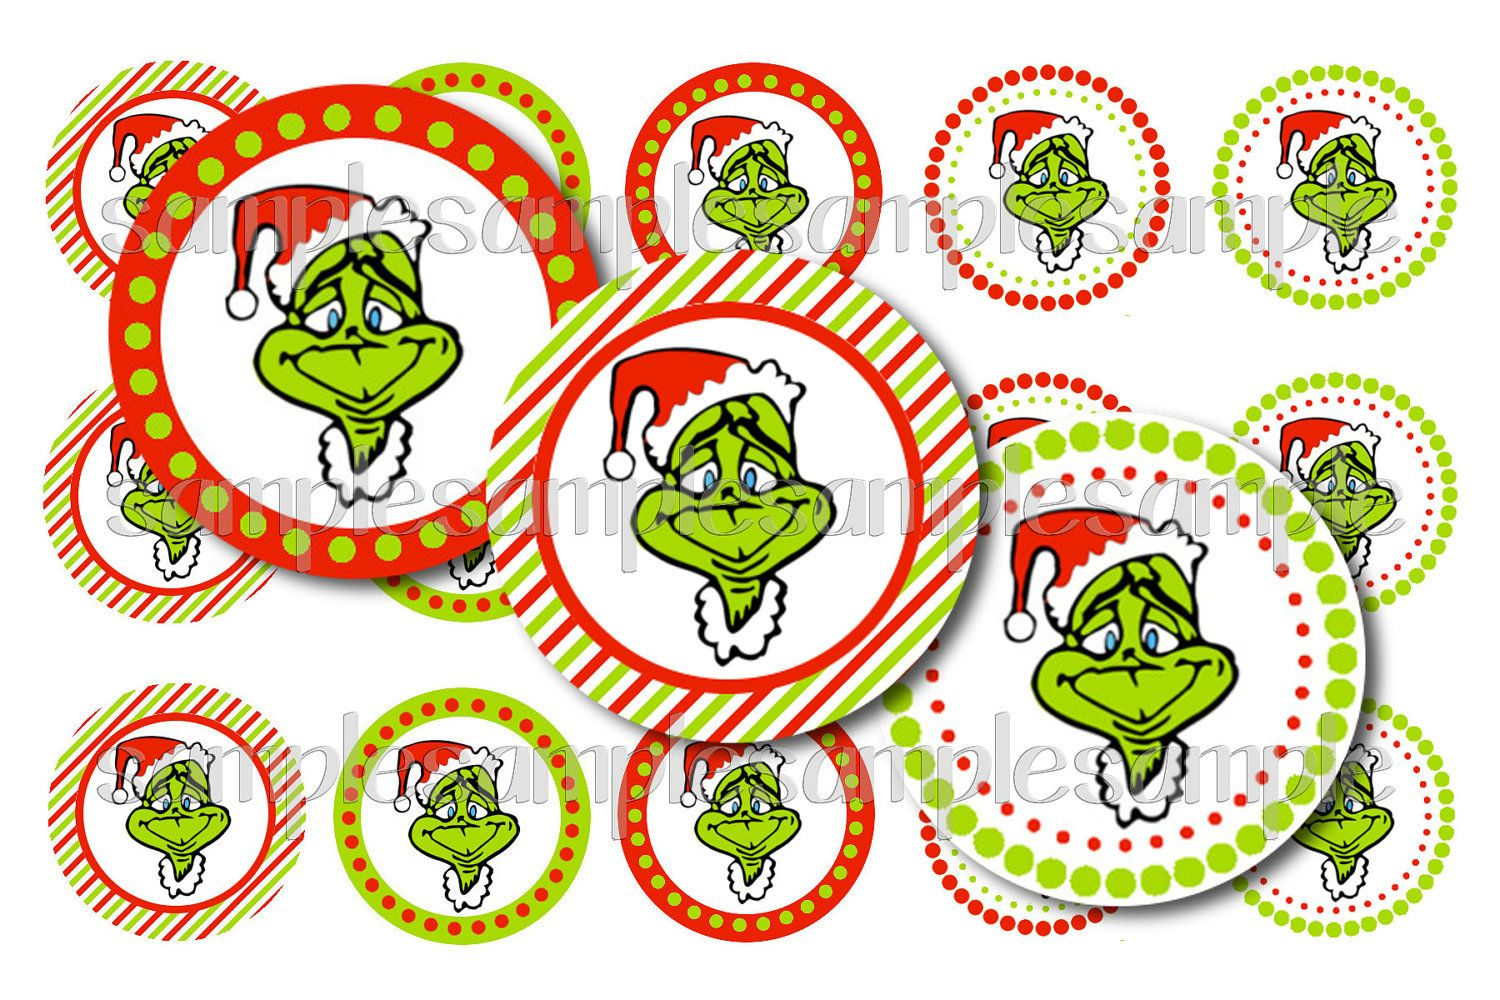 Christmas Grinch Bottle Cap Image Sheet. $2.00, via Etsy.  Hair Bows, Magnets, Pins, Key Chains, Scrapbooking, Party Favors...